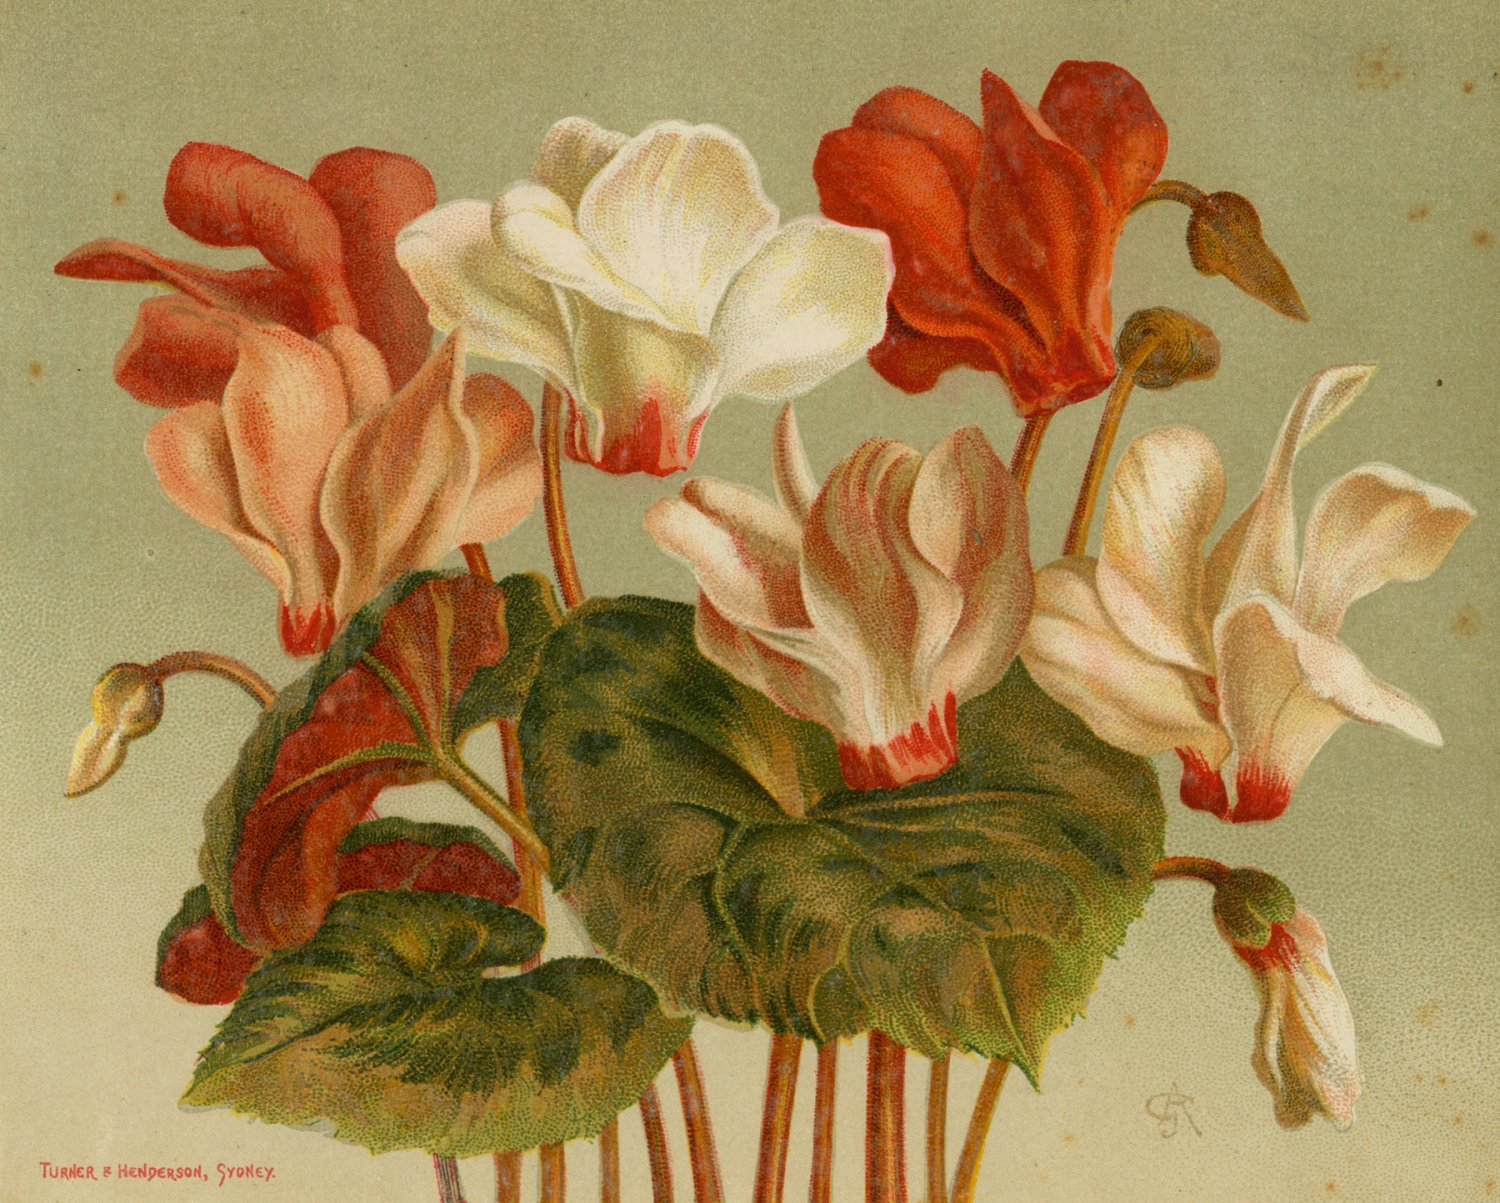 Plate 98: Cyclamens, drawn by Guglielmo Autoriello, in H.A. James Hand-book of Australian horticulture published: Turner & Henderson, Sydney, 1892.